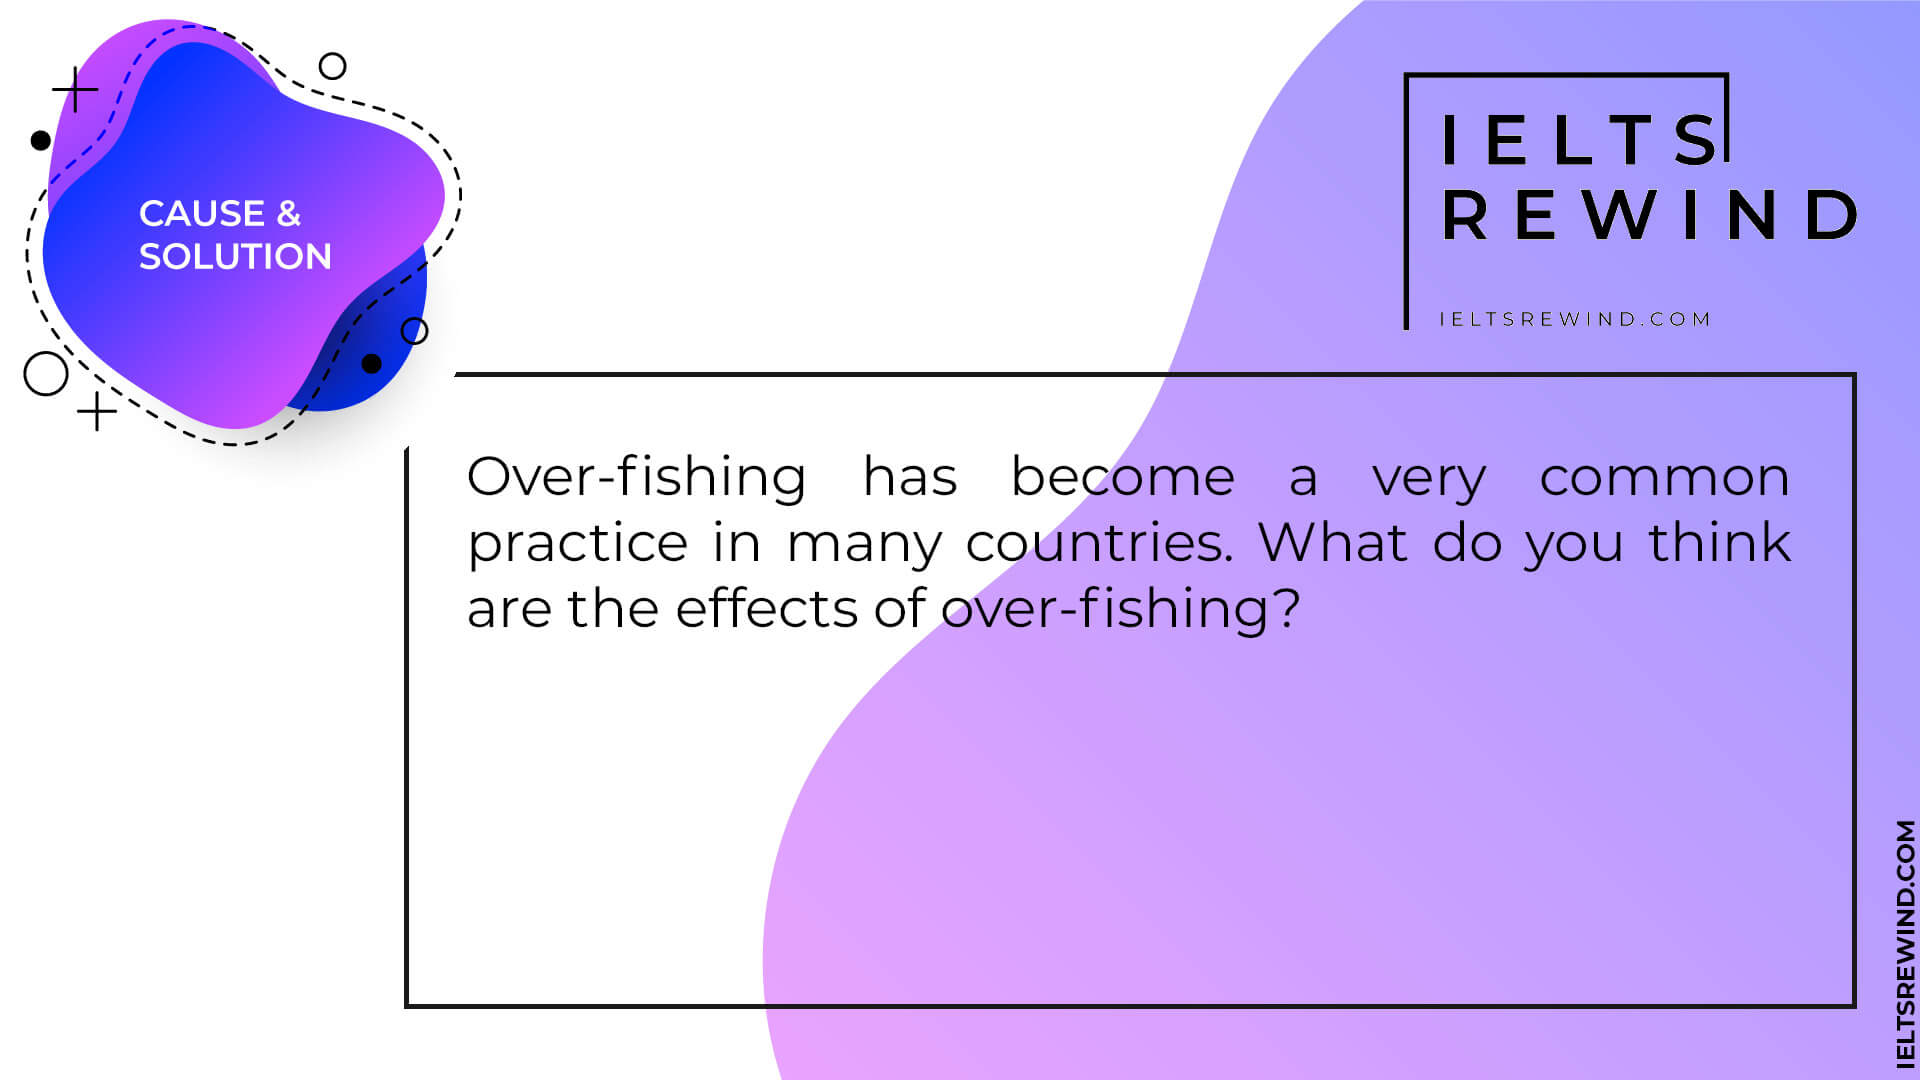 Over-fishing has become a very common